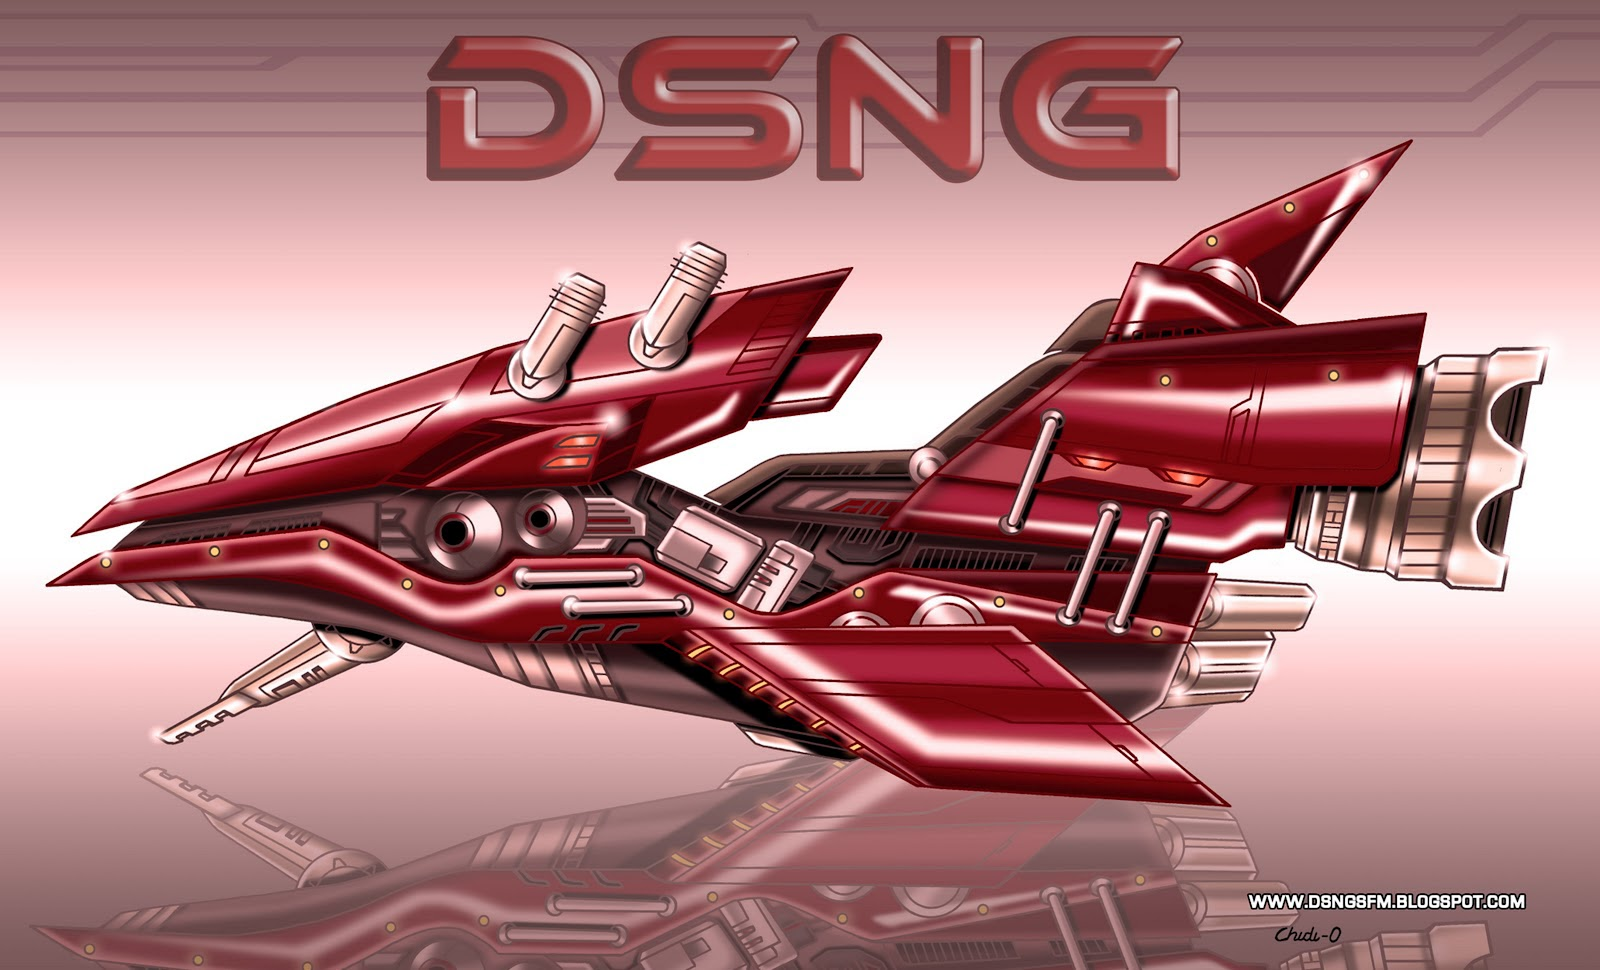 DSNGS SCI FI MEGAVERSE  SCI FI CONCEPT VEHICLES